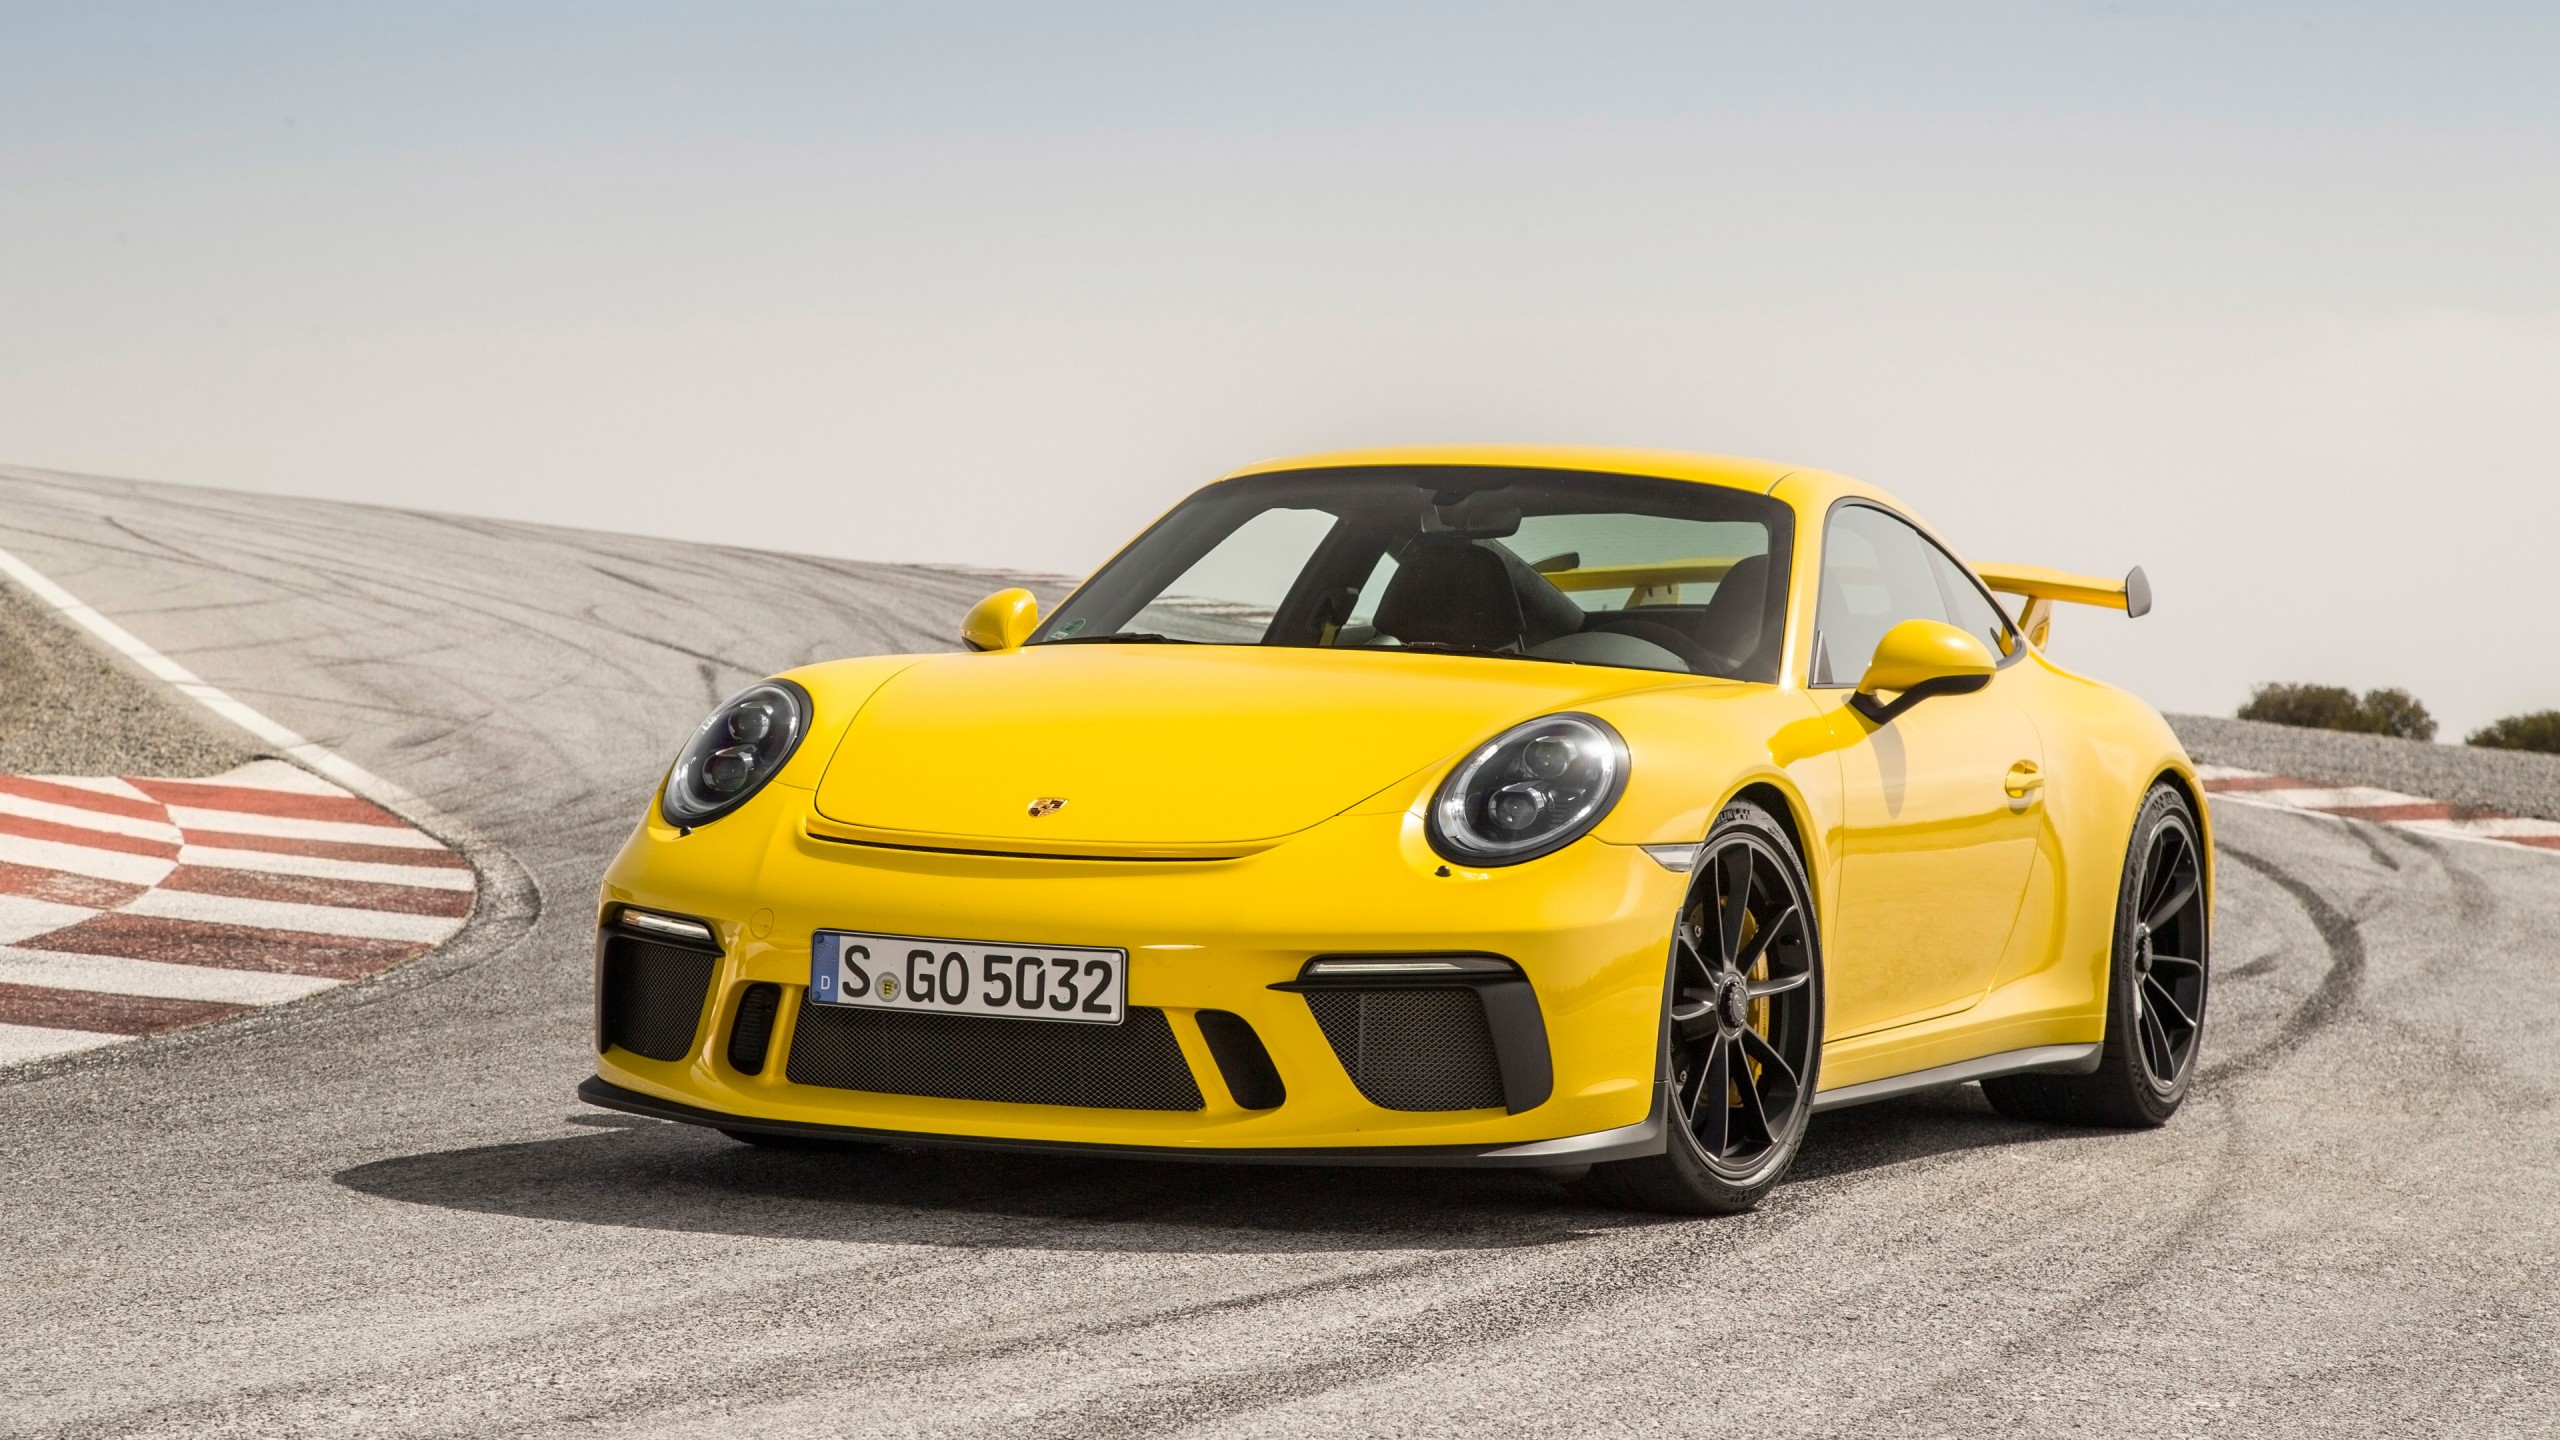 2018 Porsche 911 GT3 Racing Yellow Wallpapers